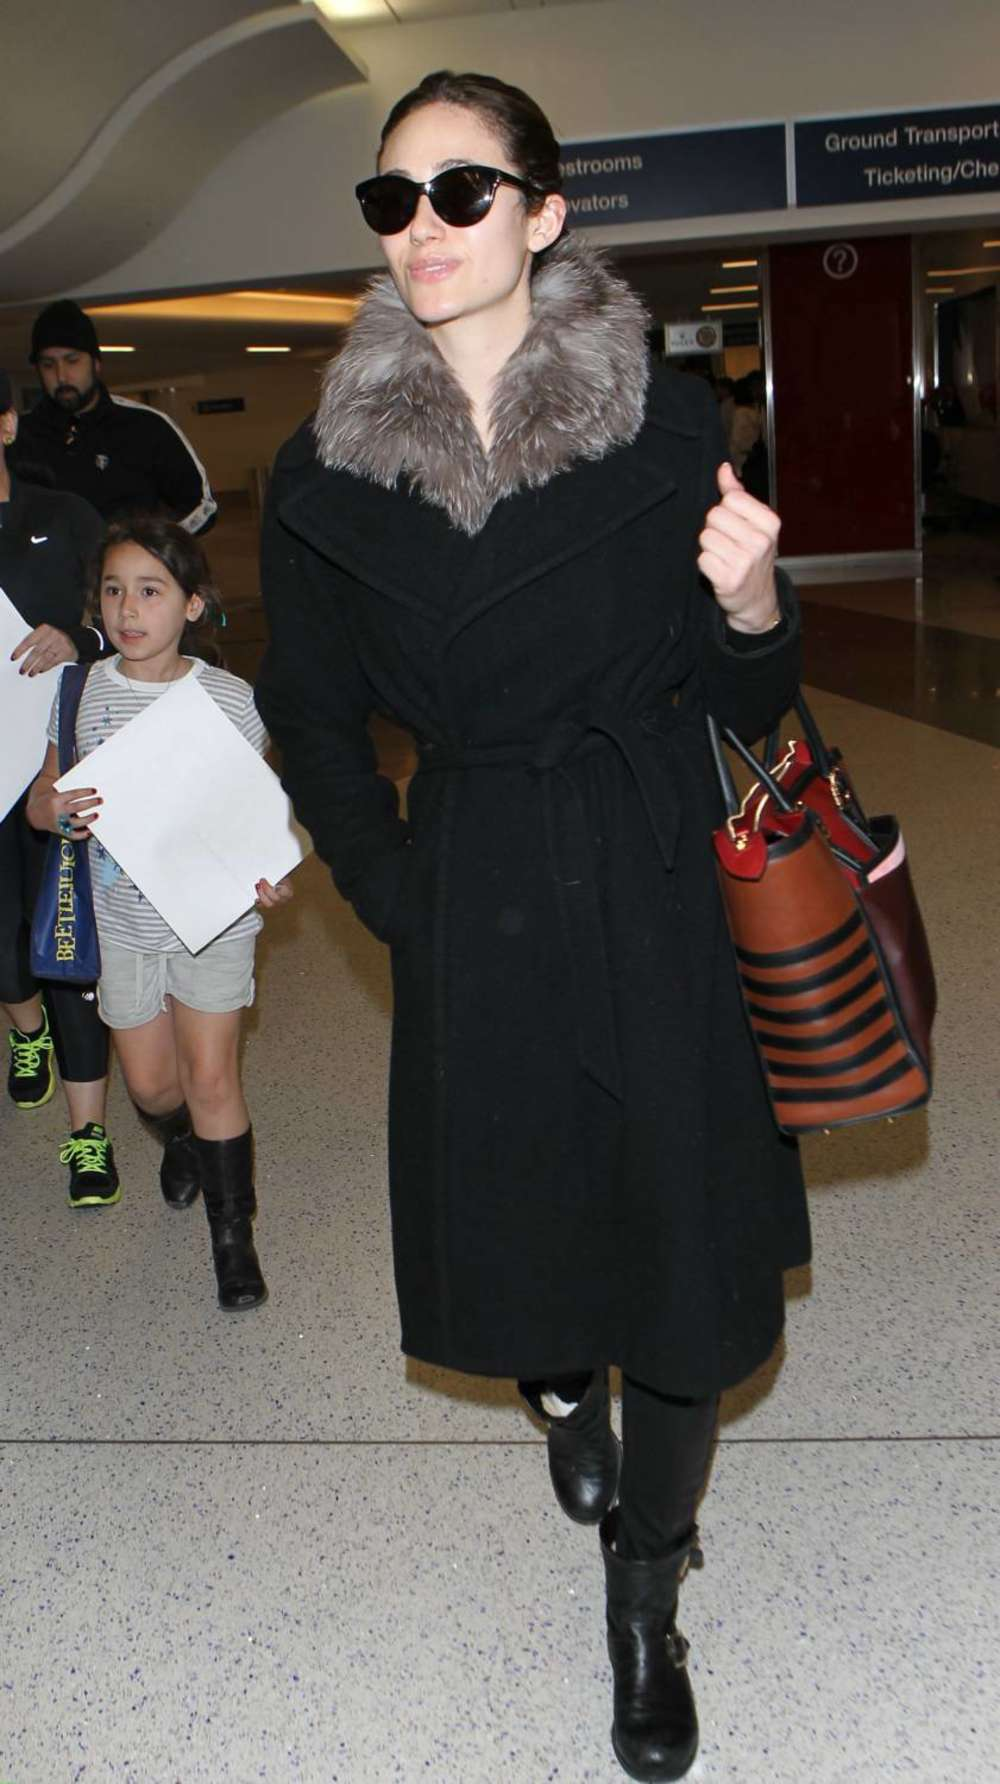 Emmy Rossum in Black Coat Arrives at LAX Airport in LA